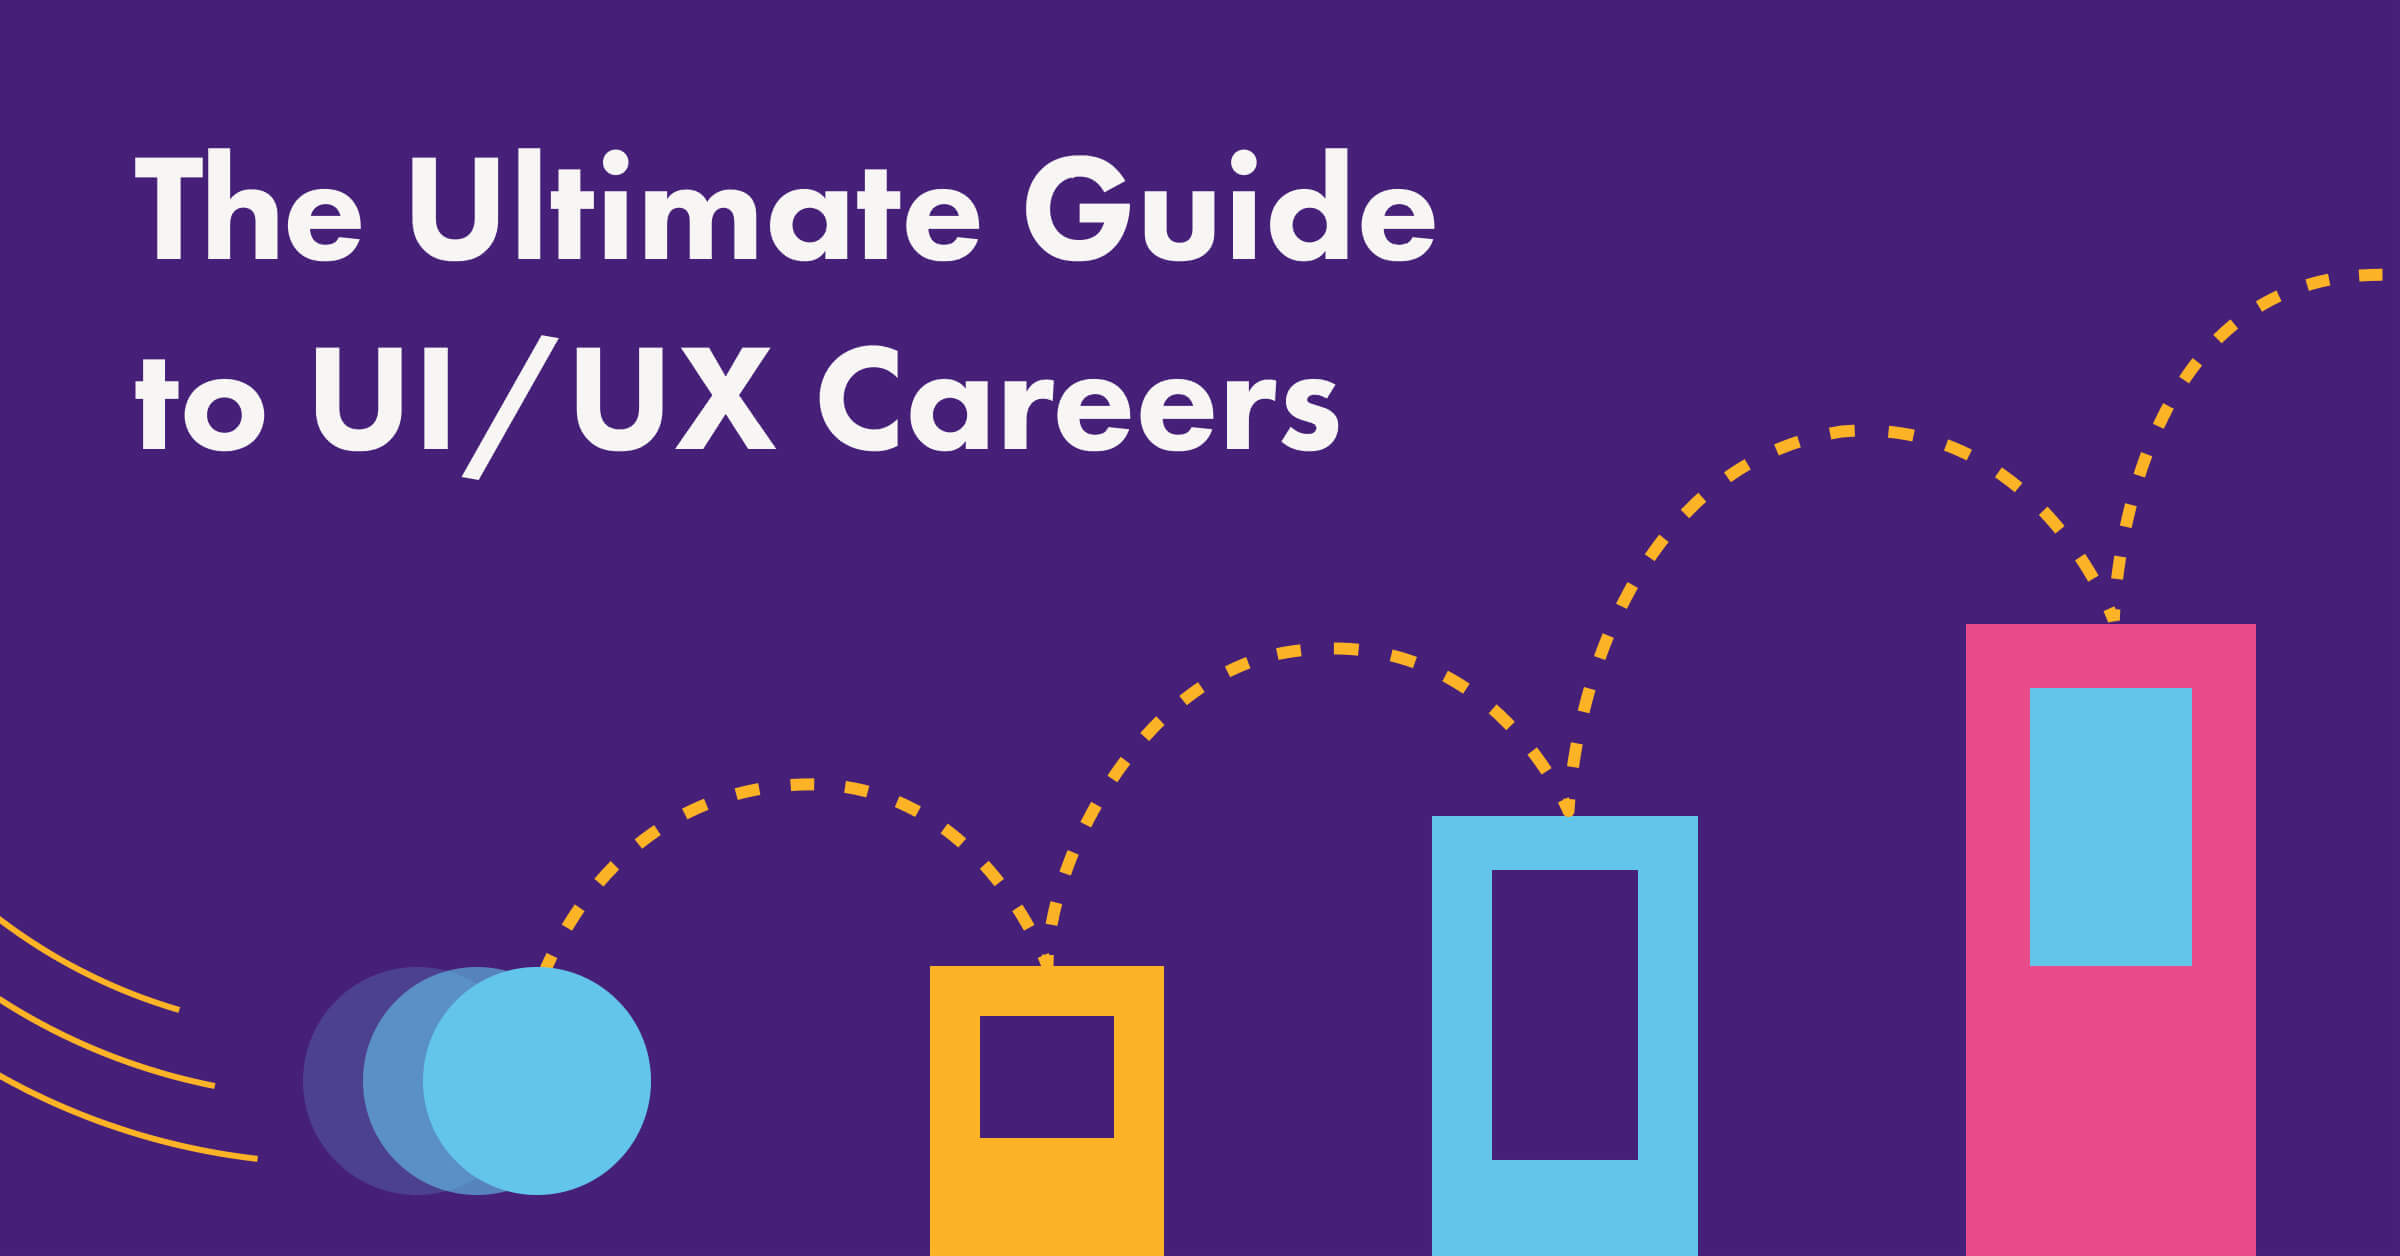 The Ultimate Guide to UI/UX Careers